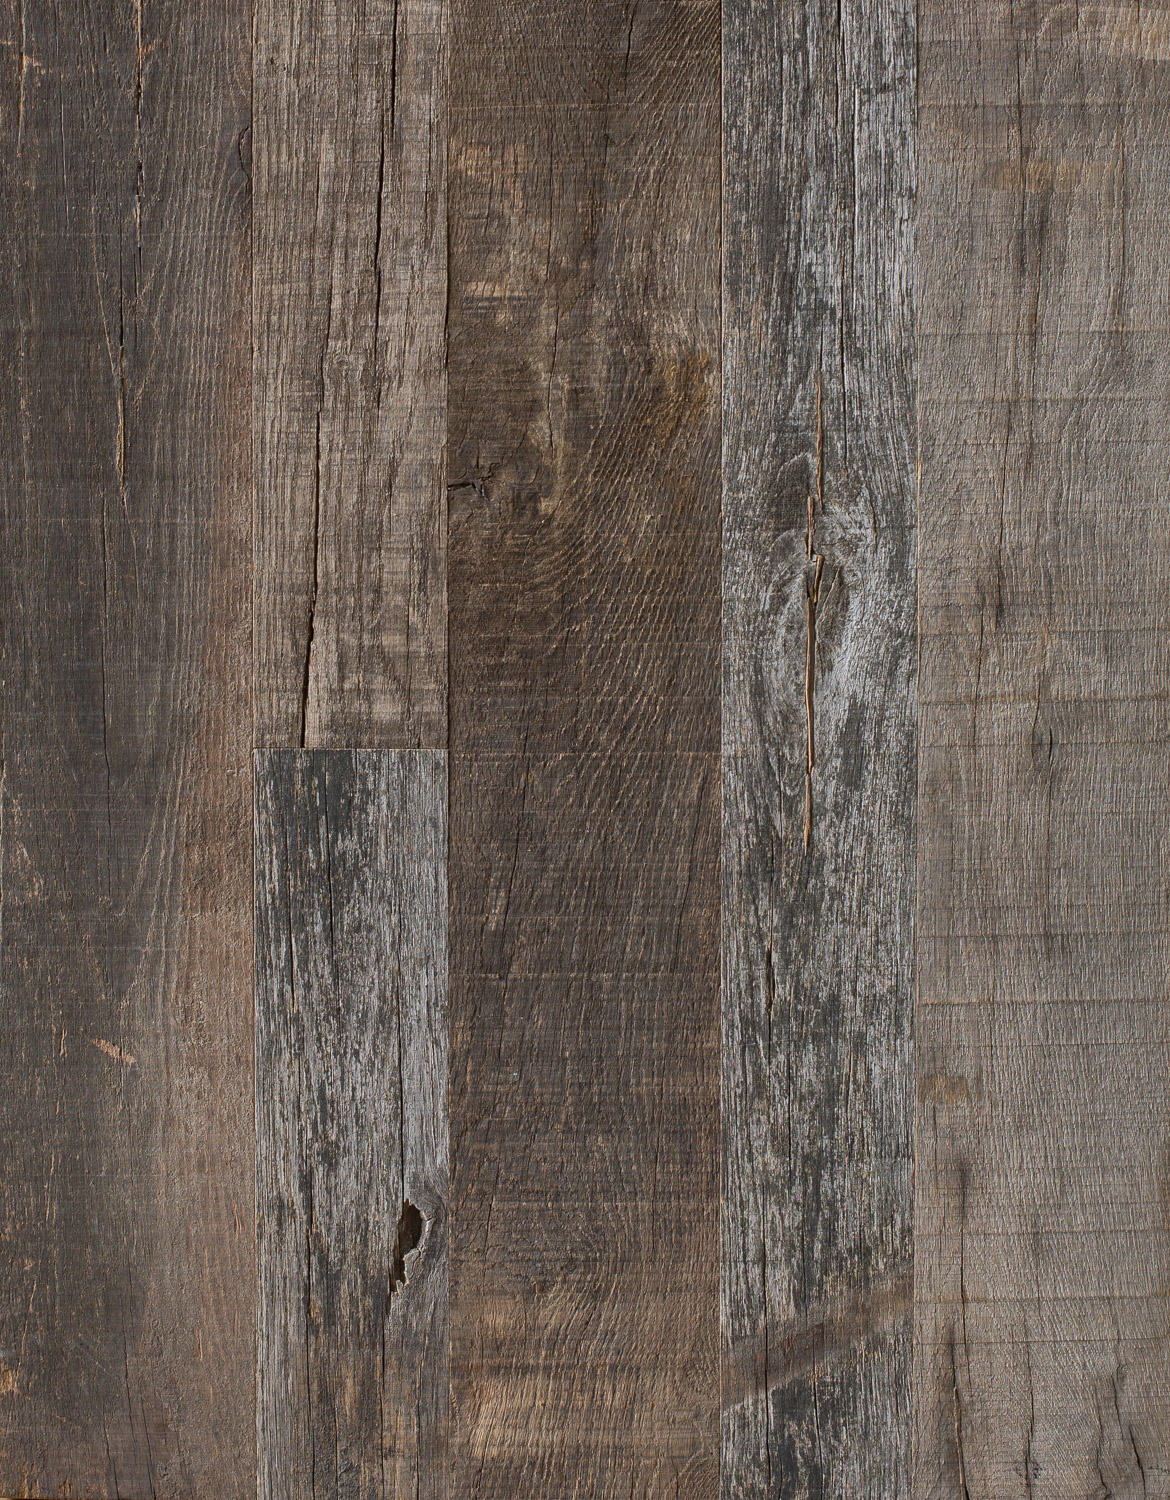 How Often To Oil Wood Flooring (2020 updated)